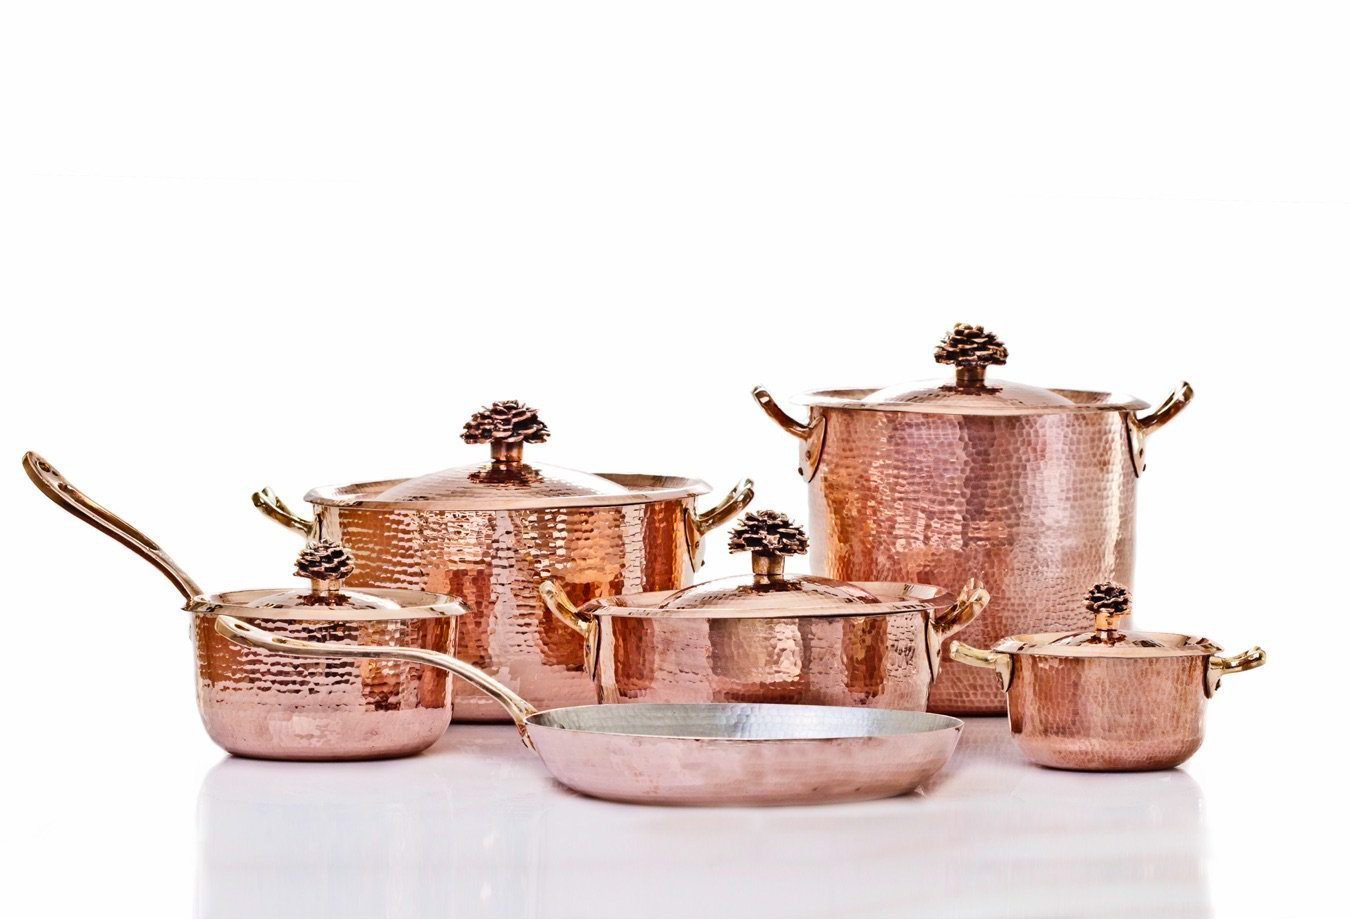 Amoretti Brothers Copper Cookware Set Collection